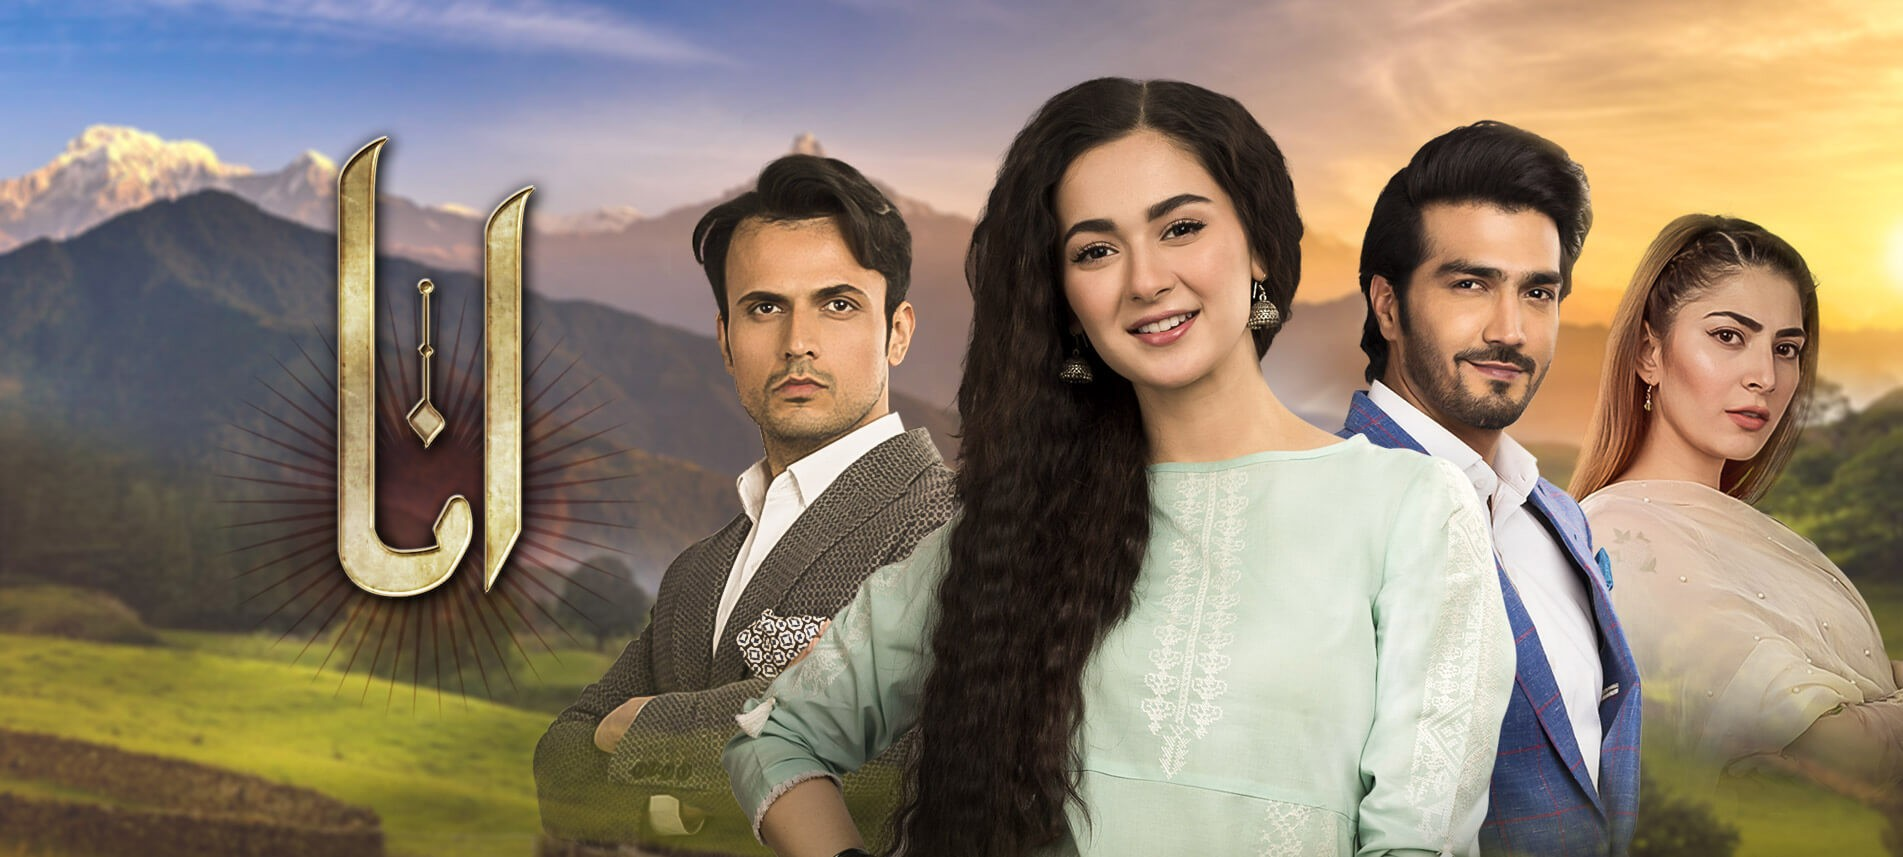 Hania Amir is one of the youngest yet one of the most popular actresses in the Pakistani entertainment industry. She is business since the day she entered the industry. One after the other, all her projects have been about strong work, acting, and her exceptional performance. This is why, today, we have decided to compile a list of some of Hania's best works. Let's take a look at some of the best dramas Hania Amir has acted in, so you can binge-watch them over the weekend! Anaa If there is one drama that has been tremendously popular not only for Hania Amir but Naimal Khawar and Usman Mukhtar as well, it is Anna. The exceptional views, the beautiful background, the pretty faces, and the amazing storyline are what make Anaa our best Hania drama. Not only did Hania outdid herself in it, but Naimal, Shehzad, and Usman added life to the show equally. The story of a girl who goes through ups and downs but finds her way through it all will keep you hooked. There is no doubt that Anaa is our favorite drama and we love Amir's acting in it. Totally up to the mark, and your first choice for this cute actress's binge-watch! Titli Titli might sound problematic by the storyline, but it definitely has a unique plot. What's more is that it is based on a real story, so like it or not it is something that has happened in real life. Titli is the story of a beautiful young, girl Nayla who is egoistical because of her beauty. She falls in love with a cousin who roots for her younger sister. Thus, in revenge, she marries a rich guy and ends up torturing him and his family. This is how the story of ego, love, hatred, revenge, and extra-marital affairs begin. I won't tell any further since there is huge suspense that will boggle you at the end. Therefore, watch Titli in one go because I am sure you won't want to leave it once you start watching it. Visal Visal is undoubtedly one of the most popular dramas of the Pakistani entertainment industry and for ARY Digital in specific. It is the s